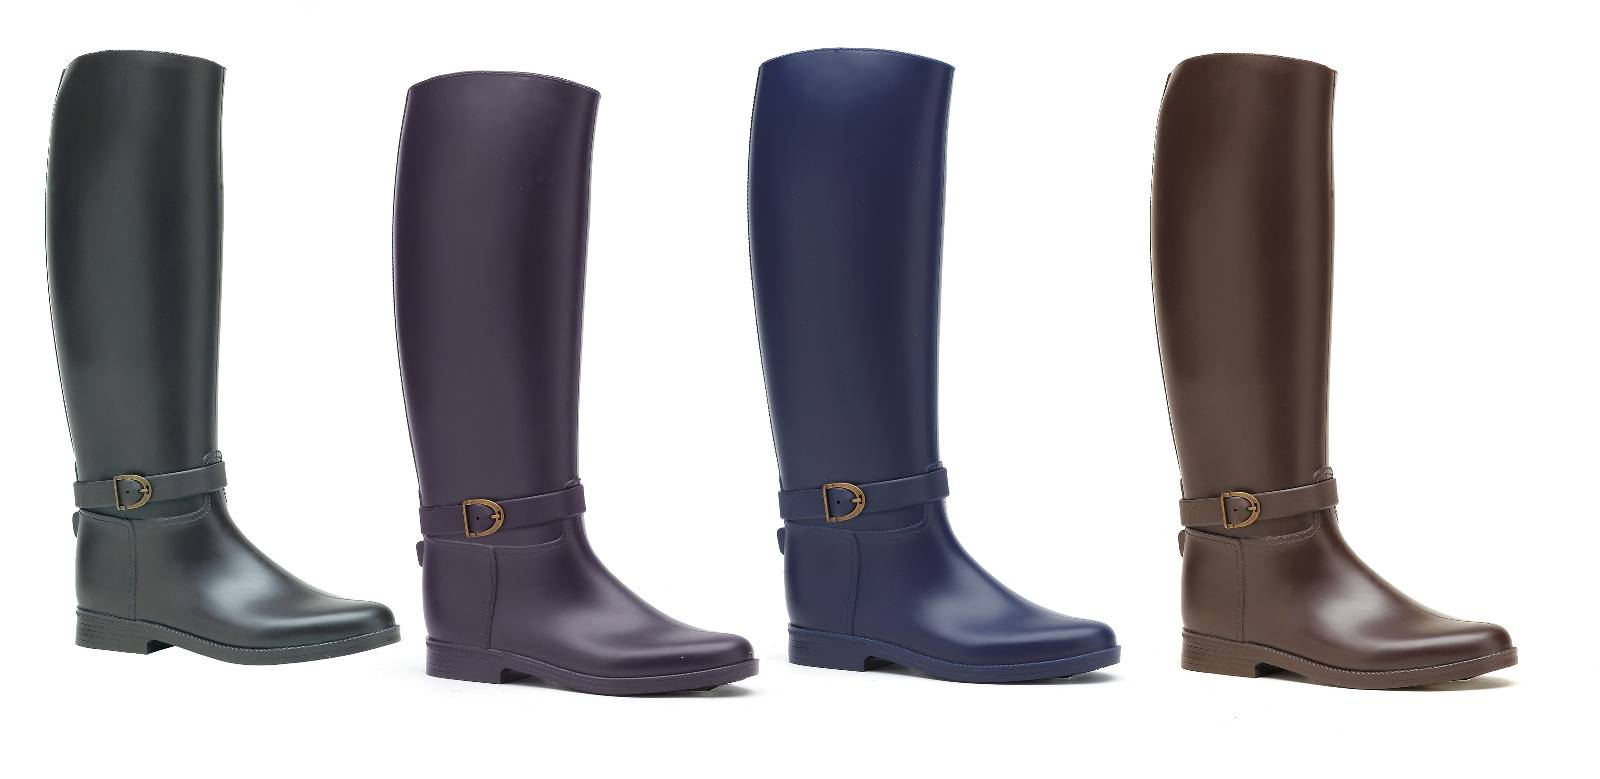 EquiStar Paris Rubber Boots - Ladies